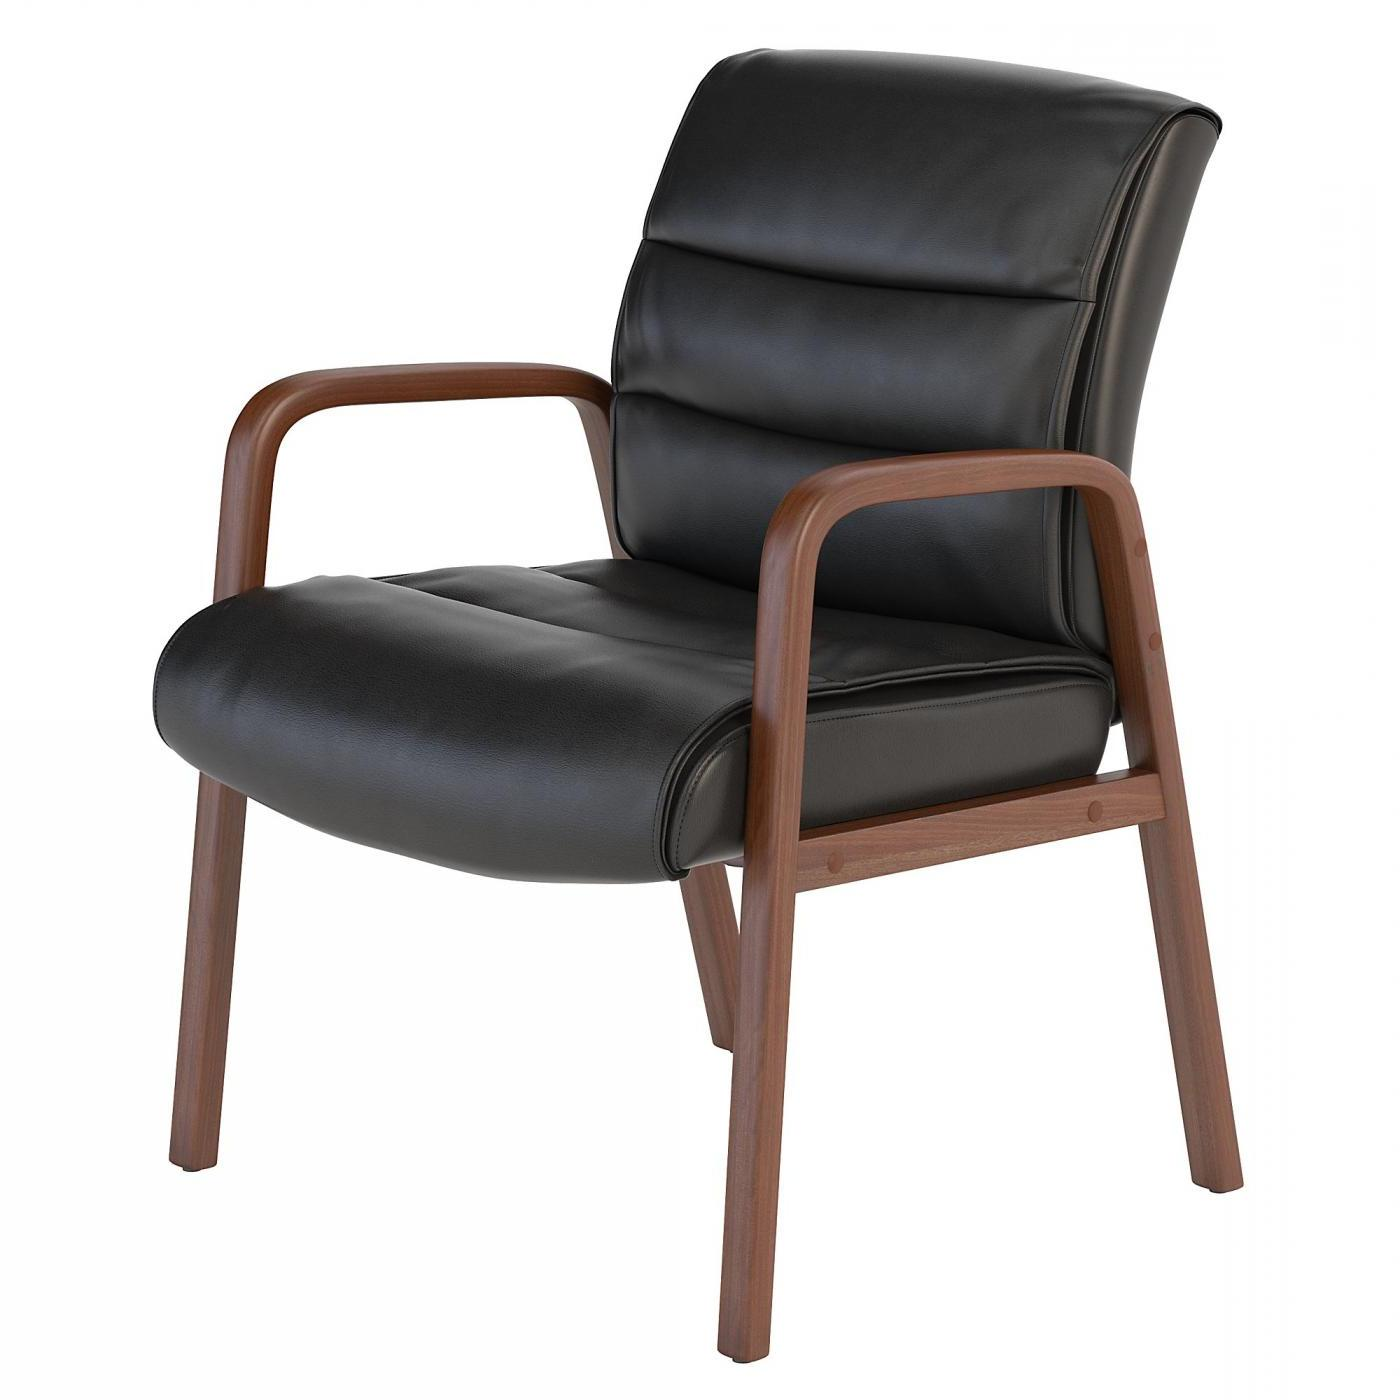 BUSH BUSINESS FURNITURE SOFT SENSE LEATHER GUEST CHAIR WITH WOOD ARMS. FREE SHIPPING.  SALE DEDUCT 10% MORE ENTER '10percent' IN COUPON CODE BOX WHILE CHECKING OUT.